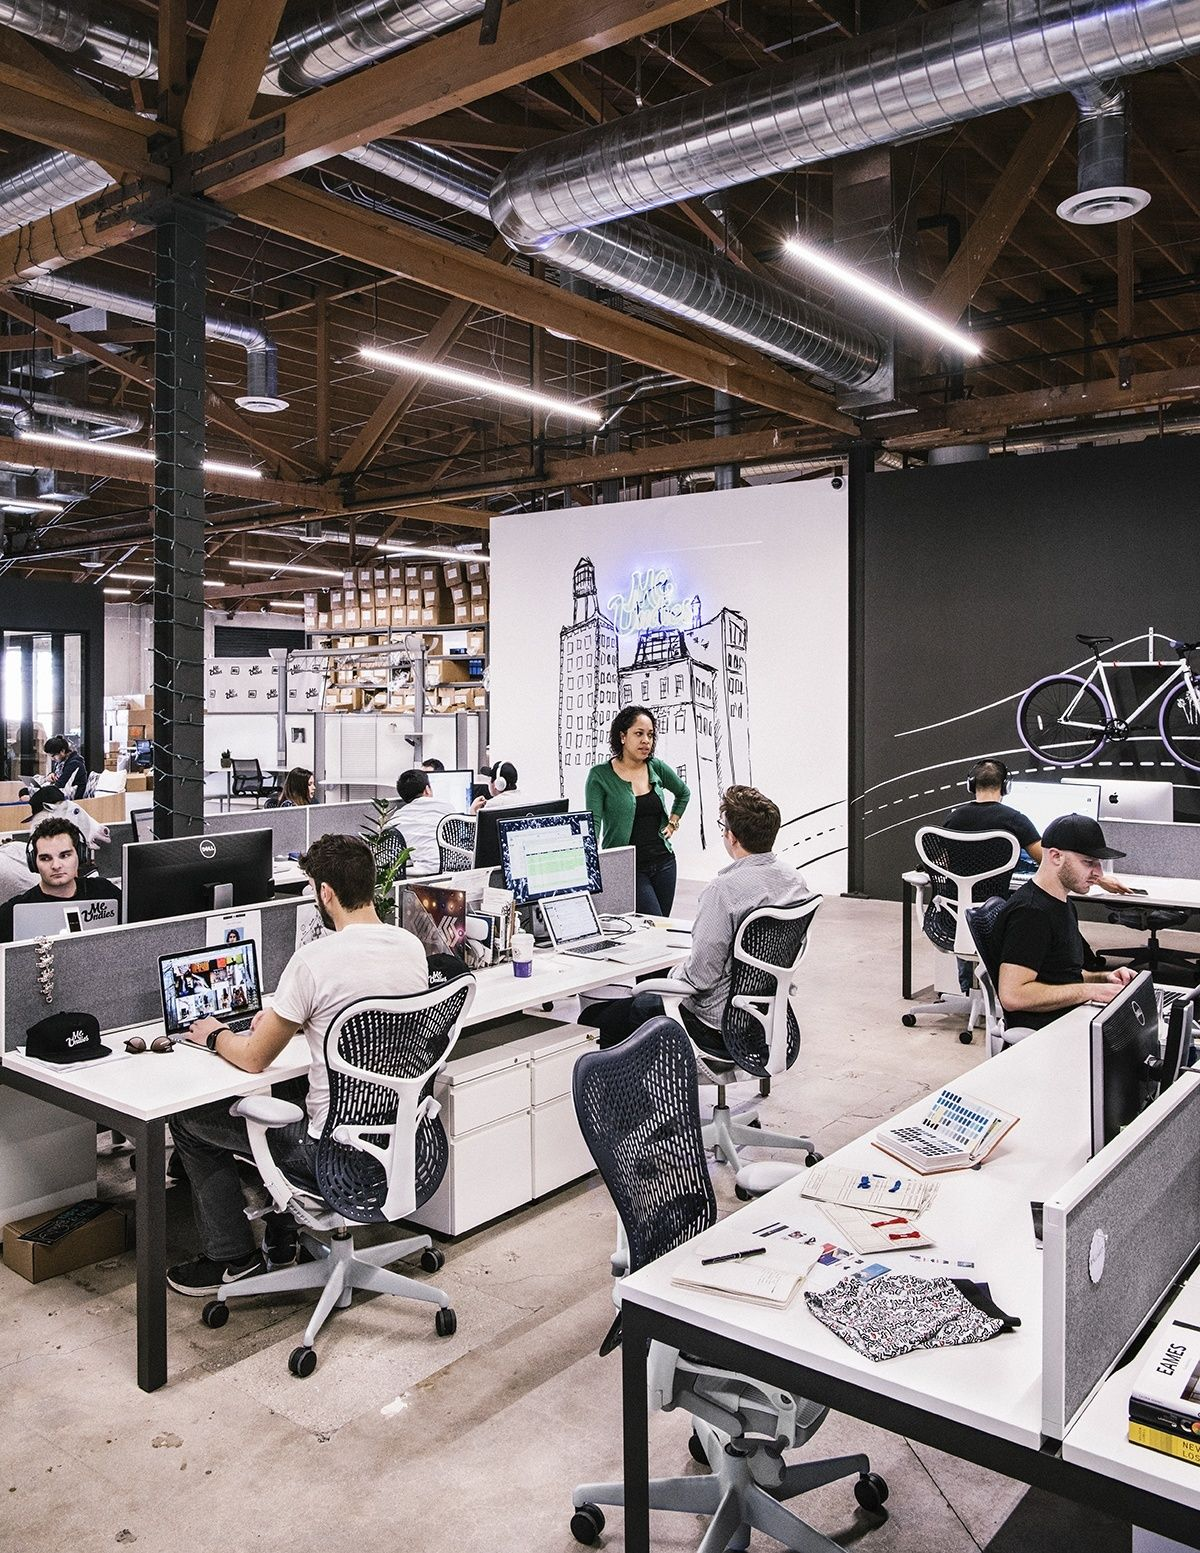 cool open office space cool office modern meundies los angeles hq creative office space cool desk loft office an exclusive tour of super